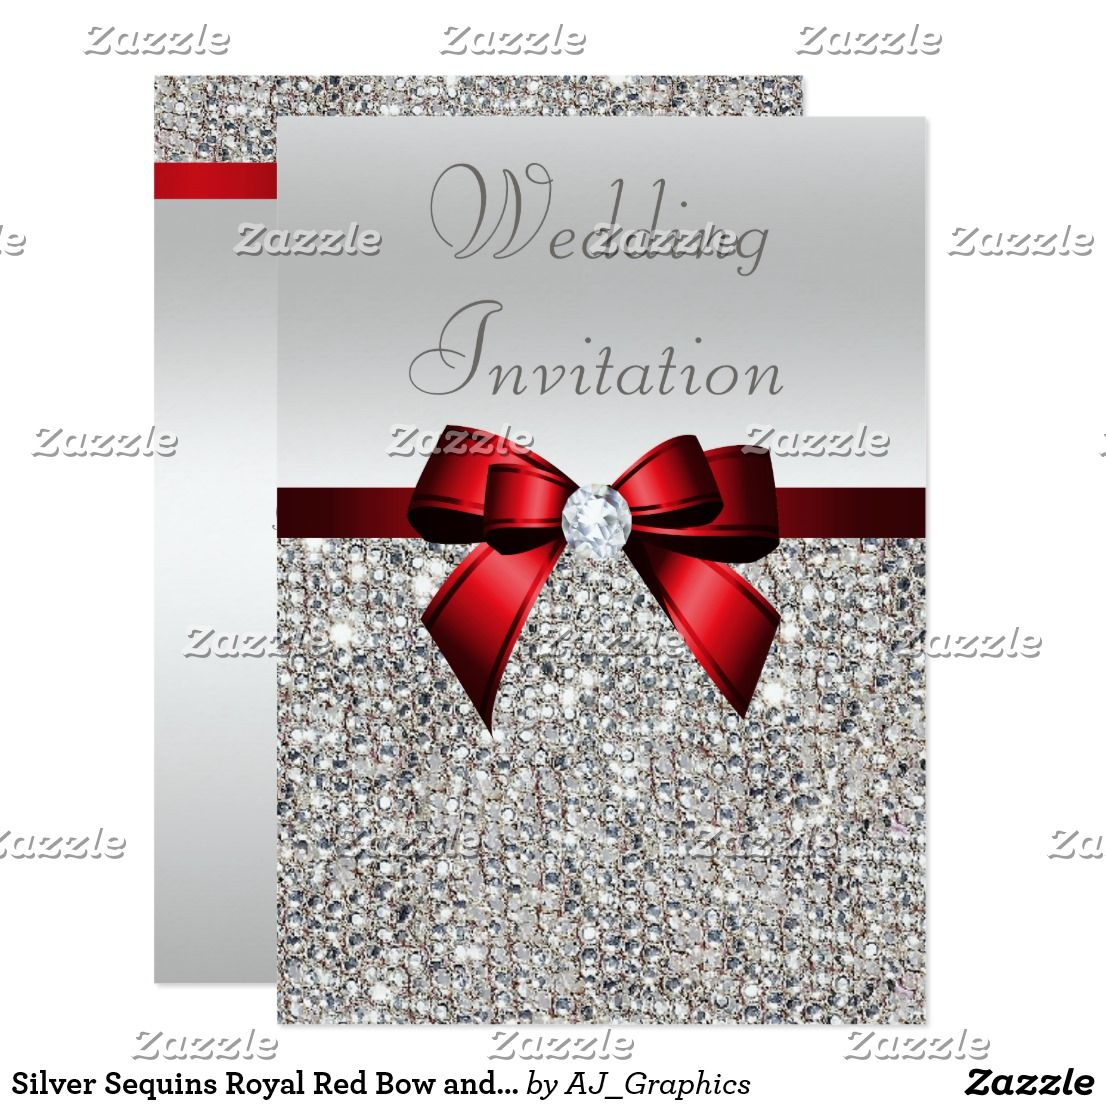 Silver Sequins Royal Red Bow and Diamond Wedding Invitation ...